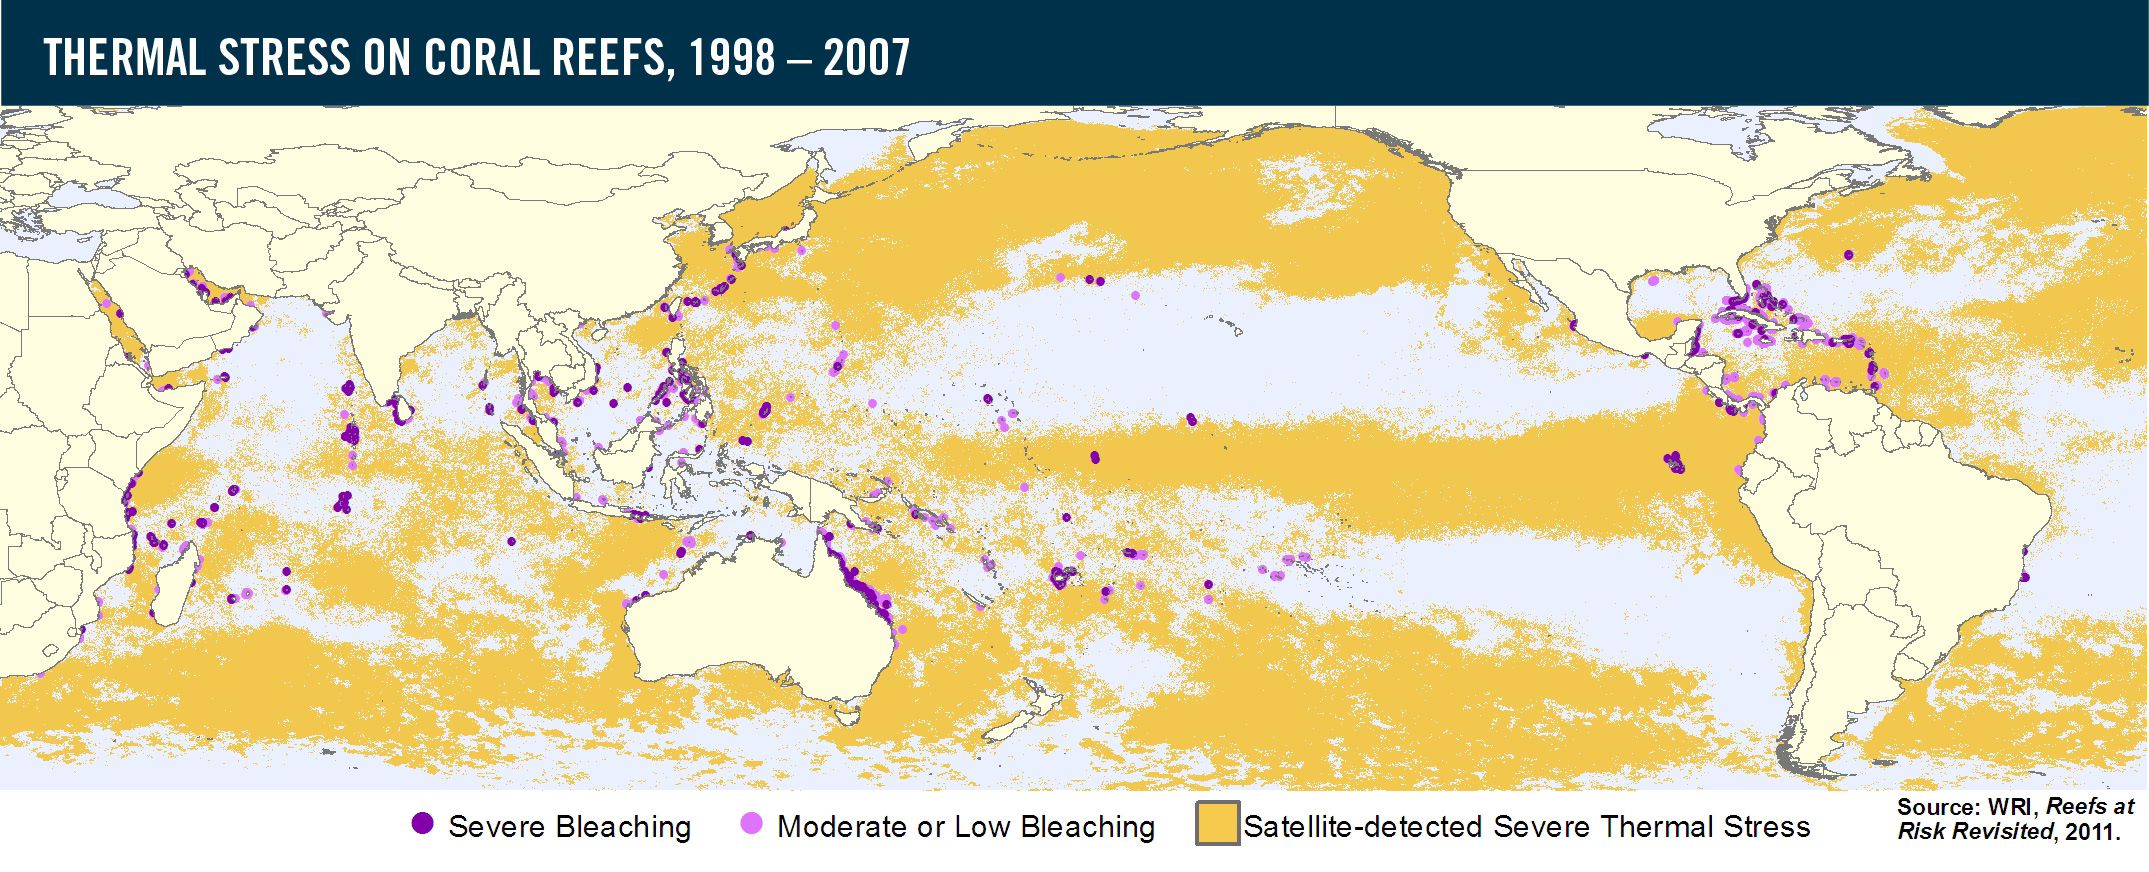 Thermal Map Of The World.Thermal Stress On Coral Reefs 1998 2007 World Resources Institute